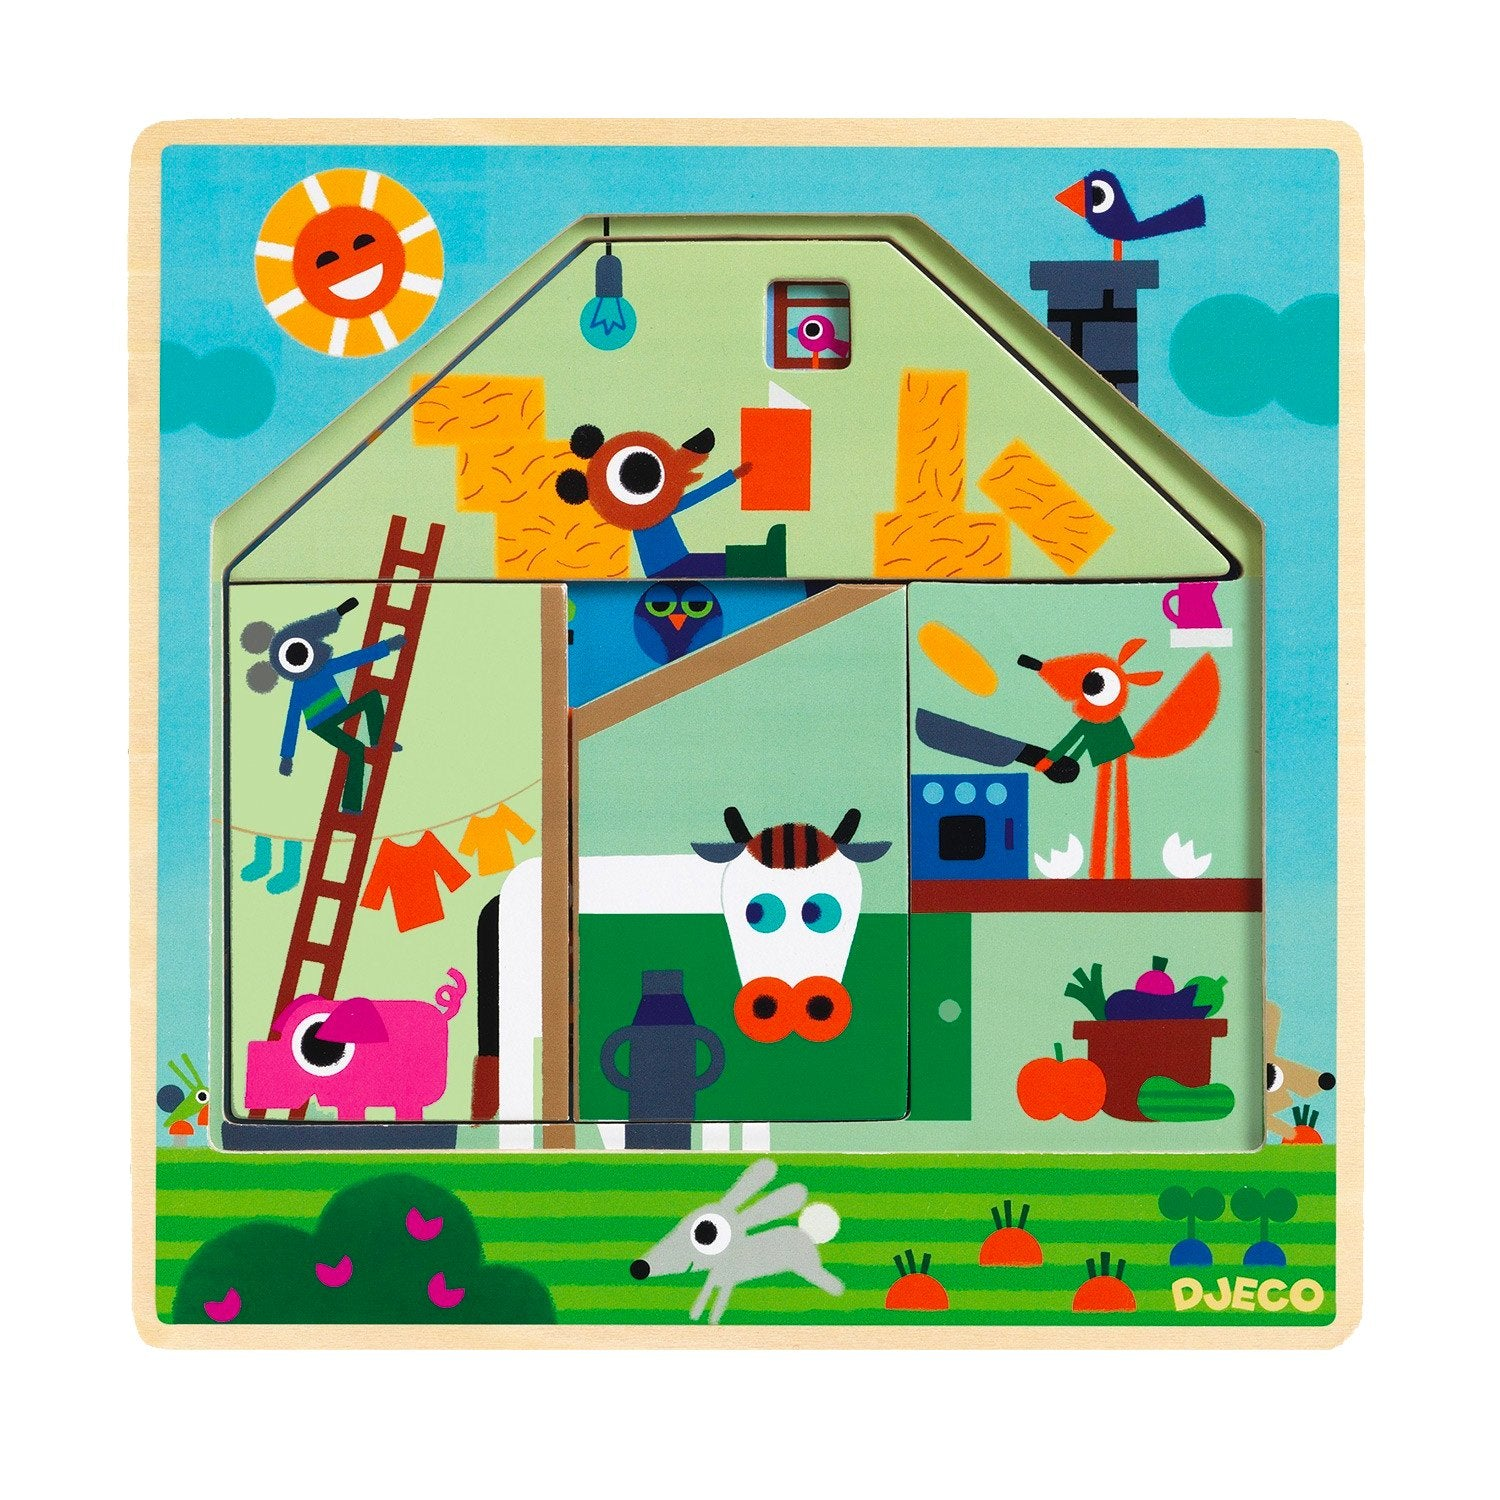 Djeco Chez Gaby Wooden 3 Layer Puzzle Djeco Puzzles at Little Earth Nest Eco Shop